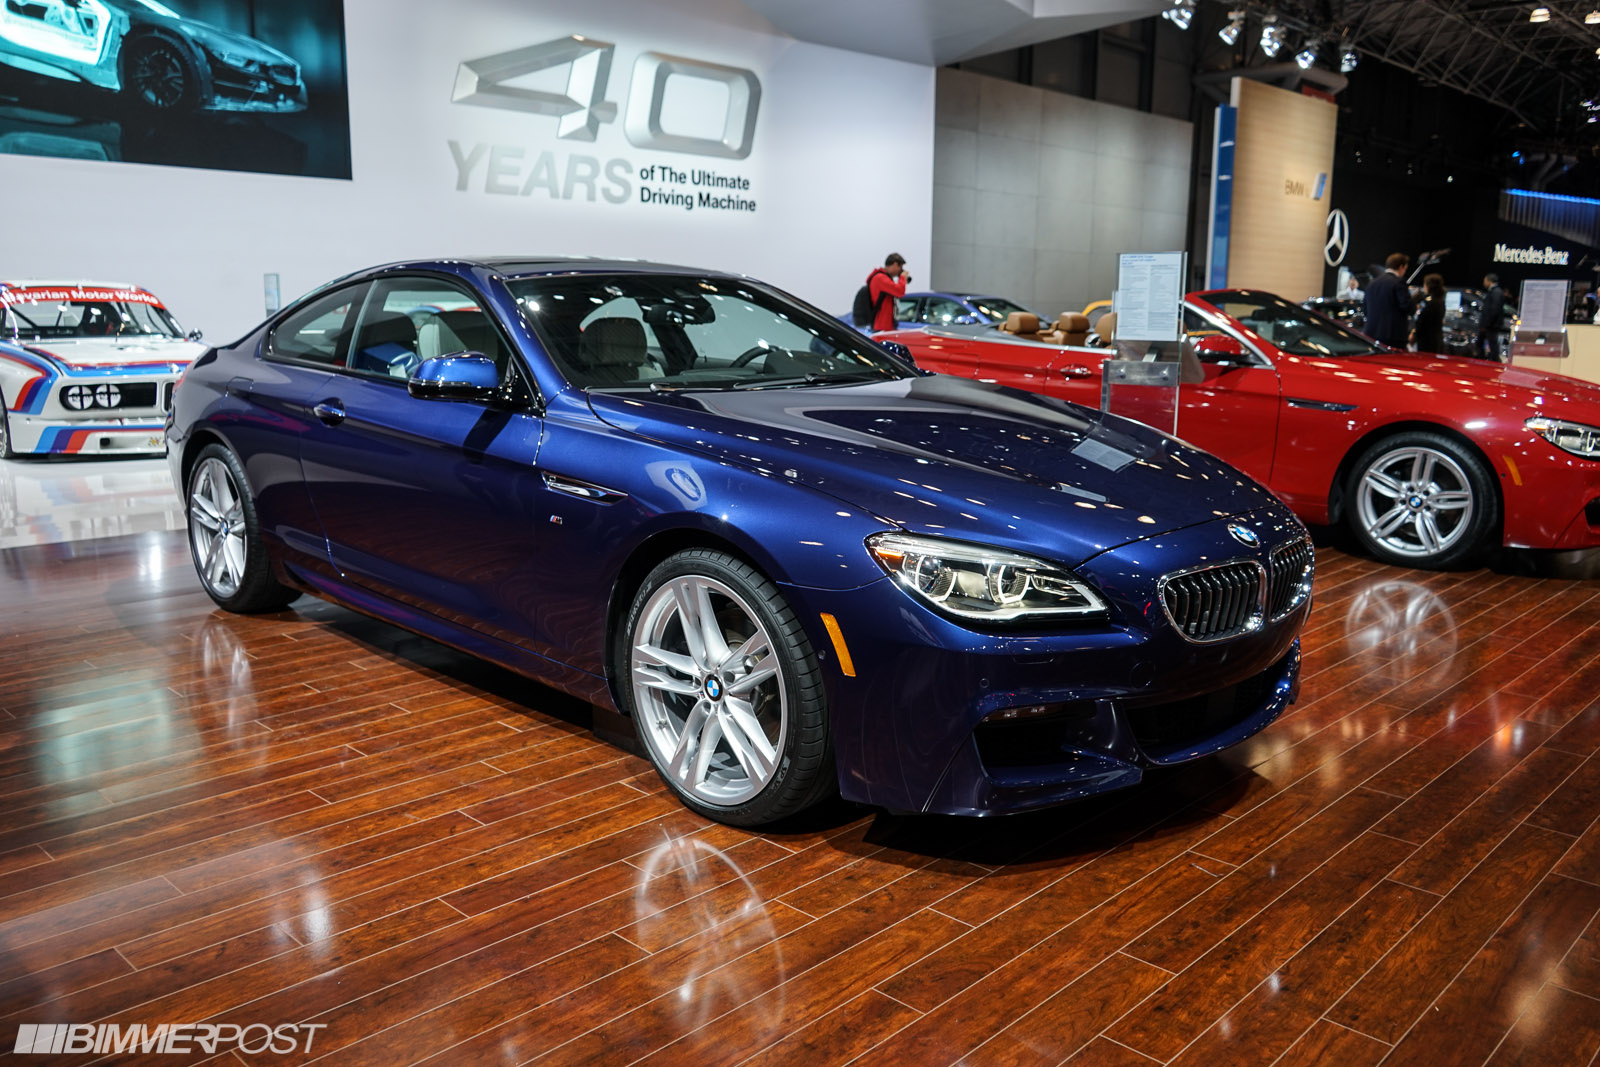 bmw m3 and bmw m4 forum view single post nyias 2015 bmw cars. Black Bedroom Furniture Sets. Home Design Ideas